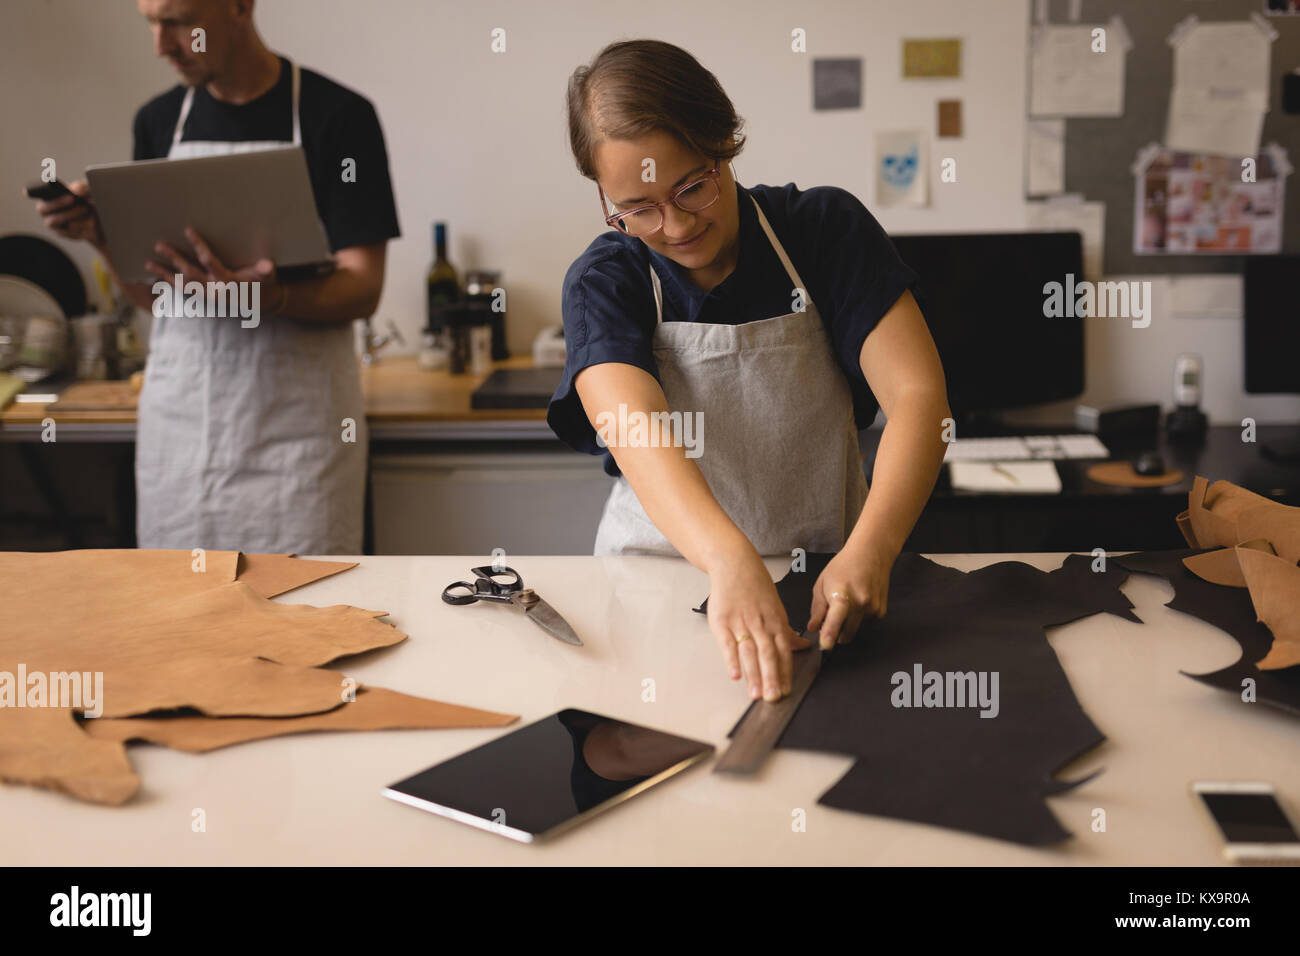 Worker measuring leather with ruler in workshop - Stock Image